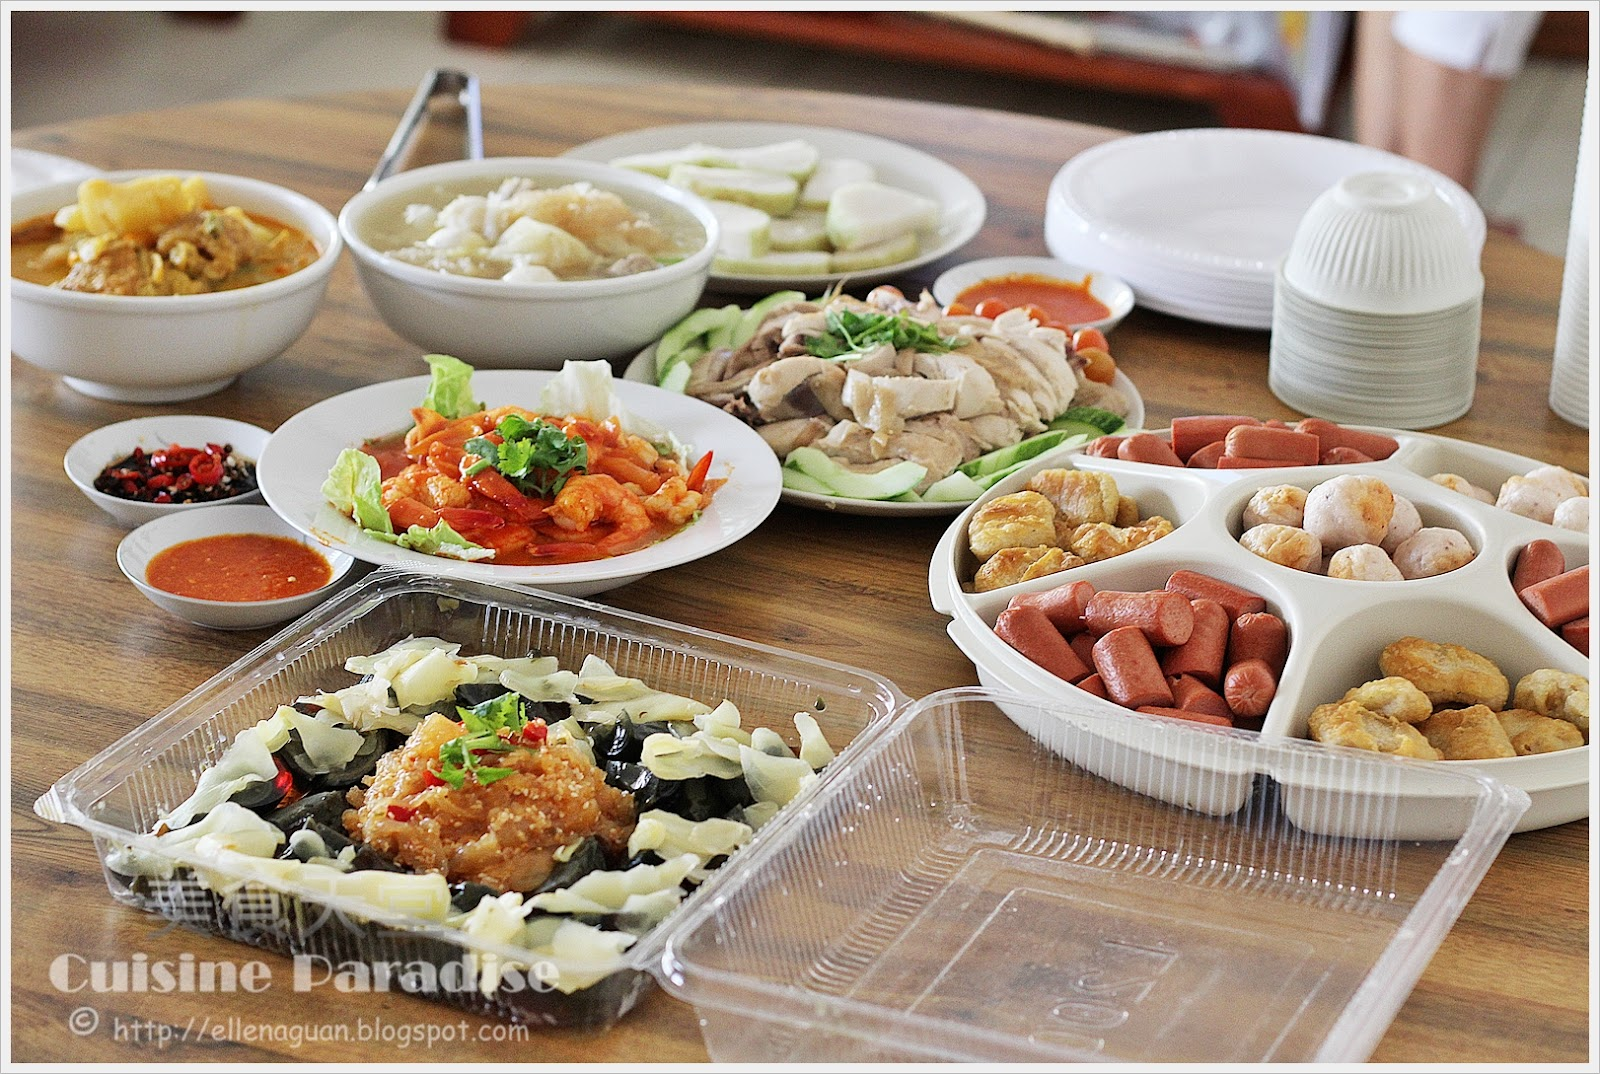 Cuisine paradise singapore food blog recipes reviews and travel cny dinner at 3rd uncle house forumfinder Image collections